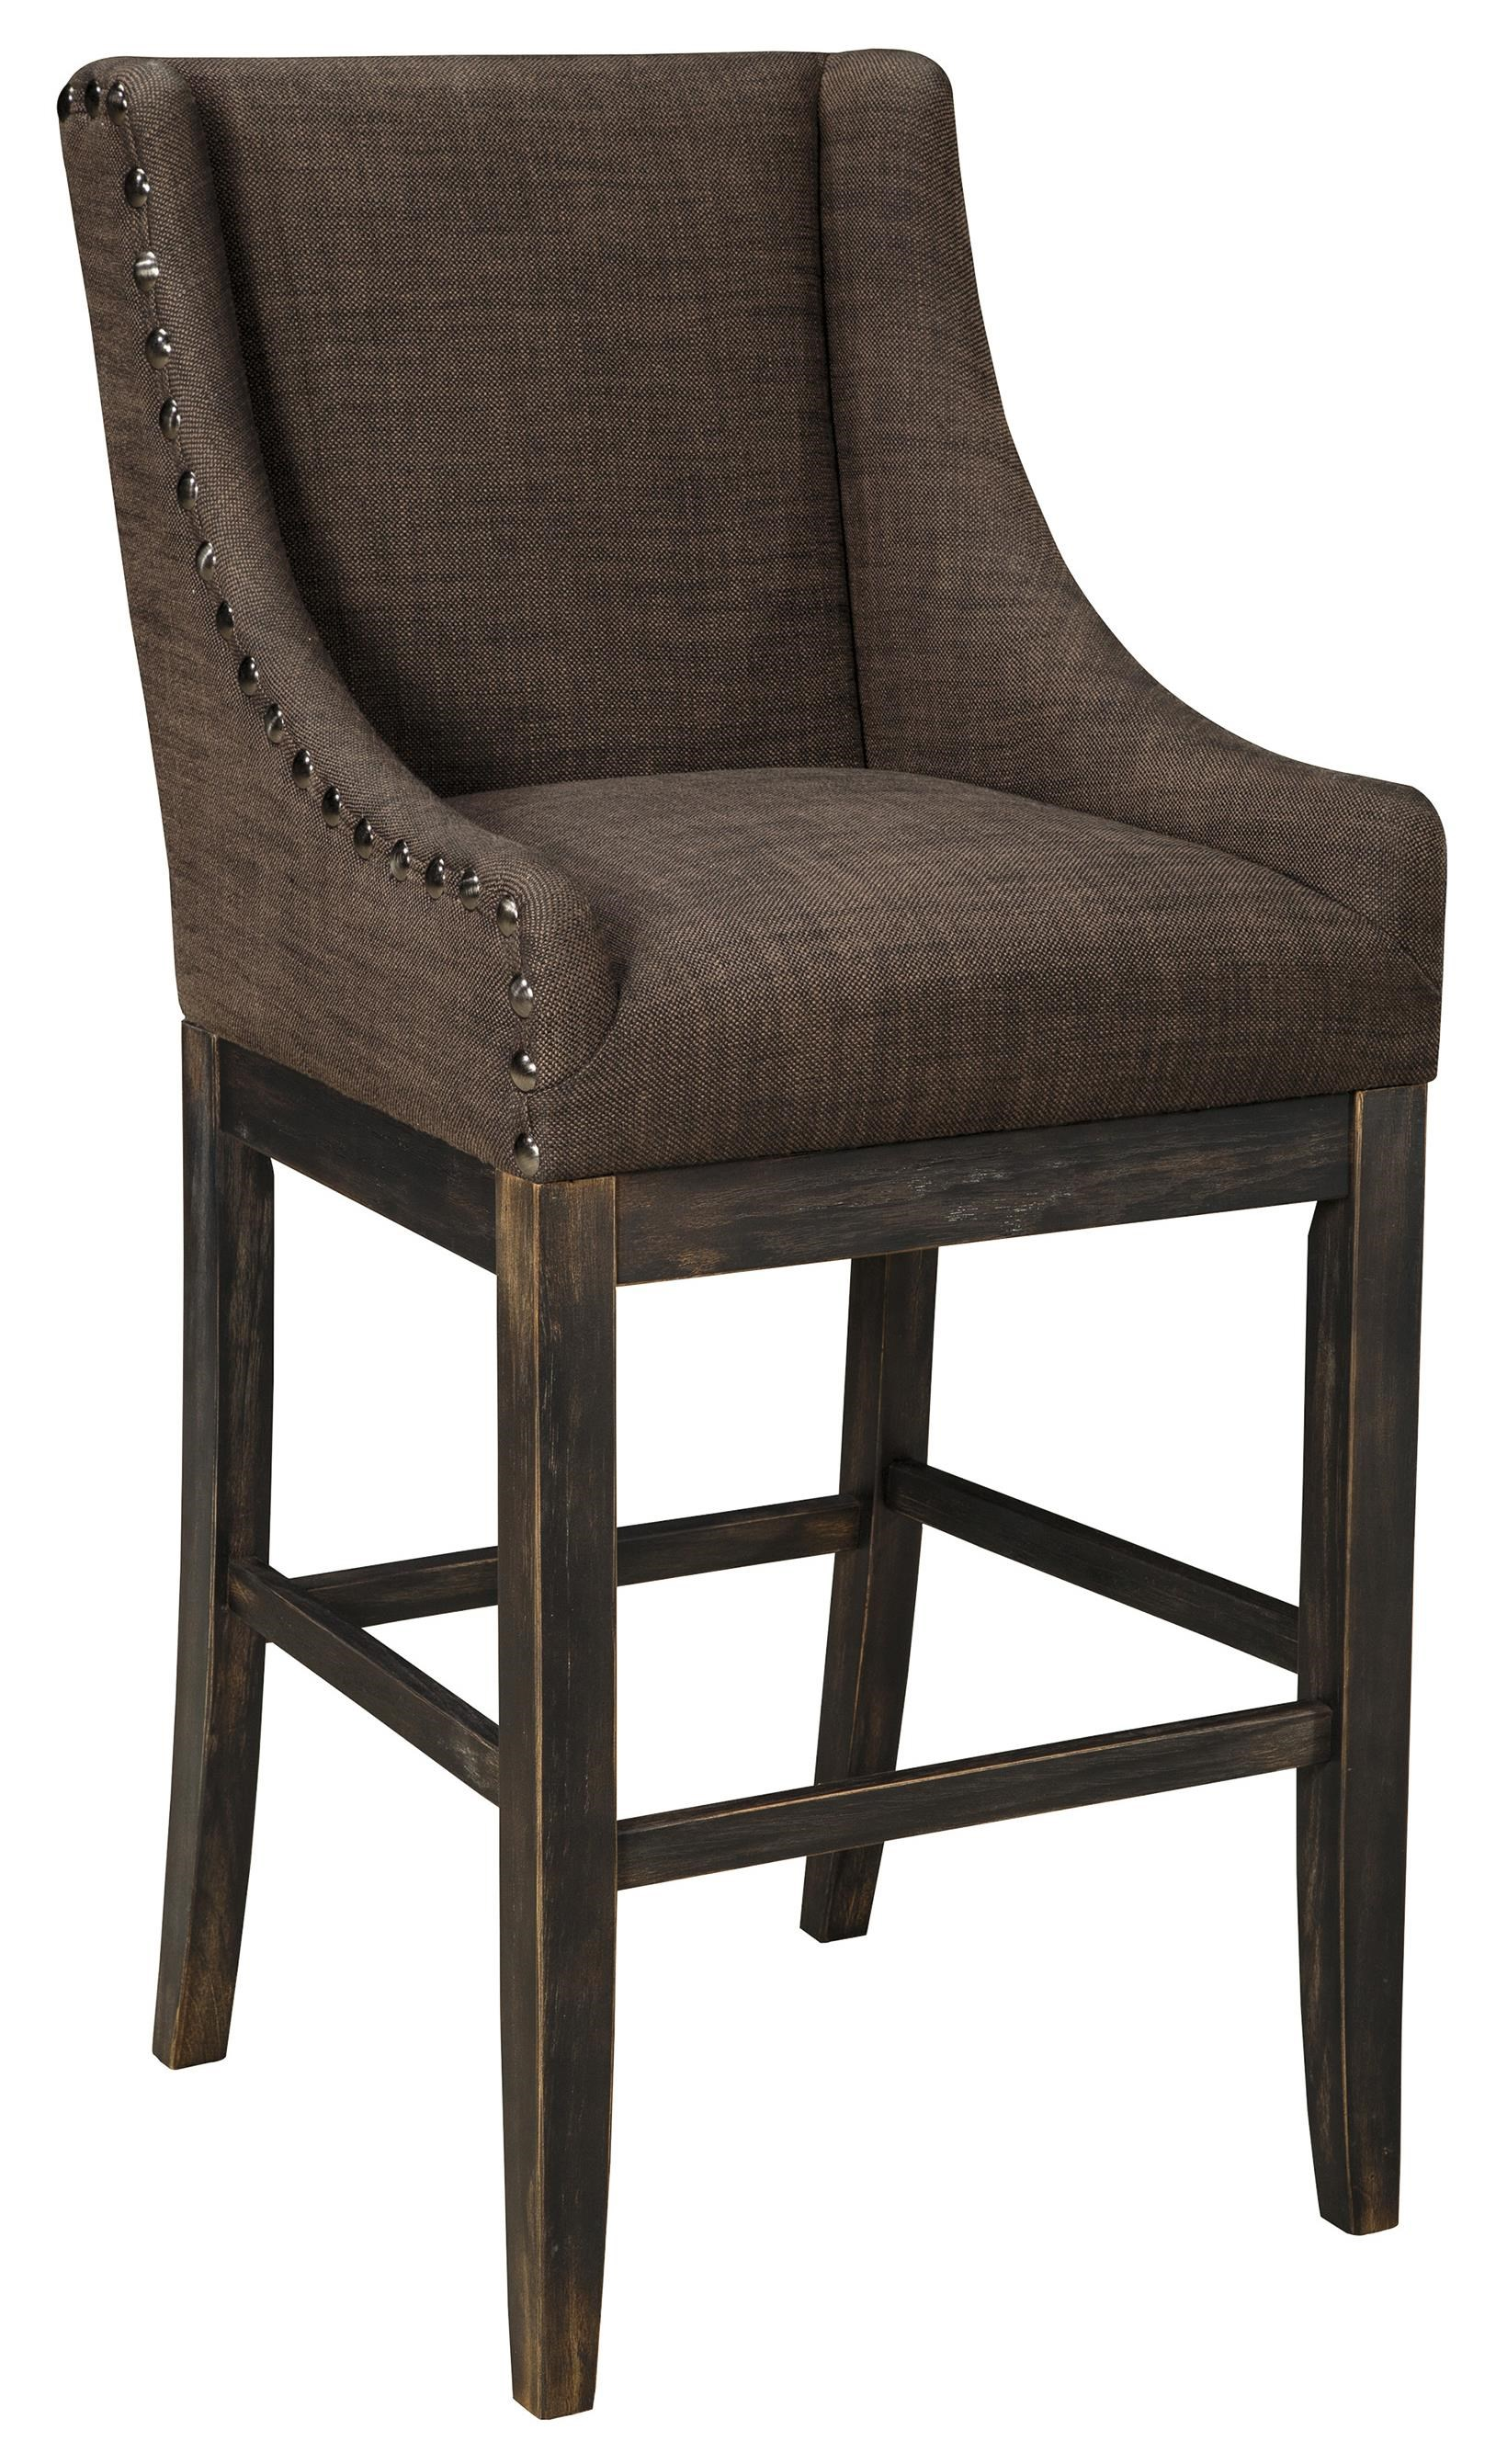 Signature Design by Ashley Moriann Tall Upholstered Barstool with Sloping Wing Arms Textured Brown Fabric